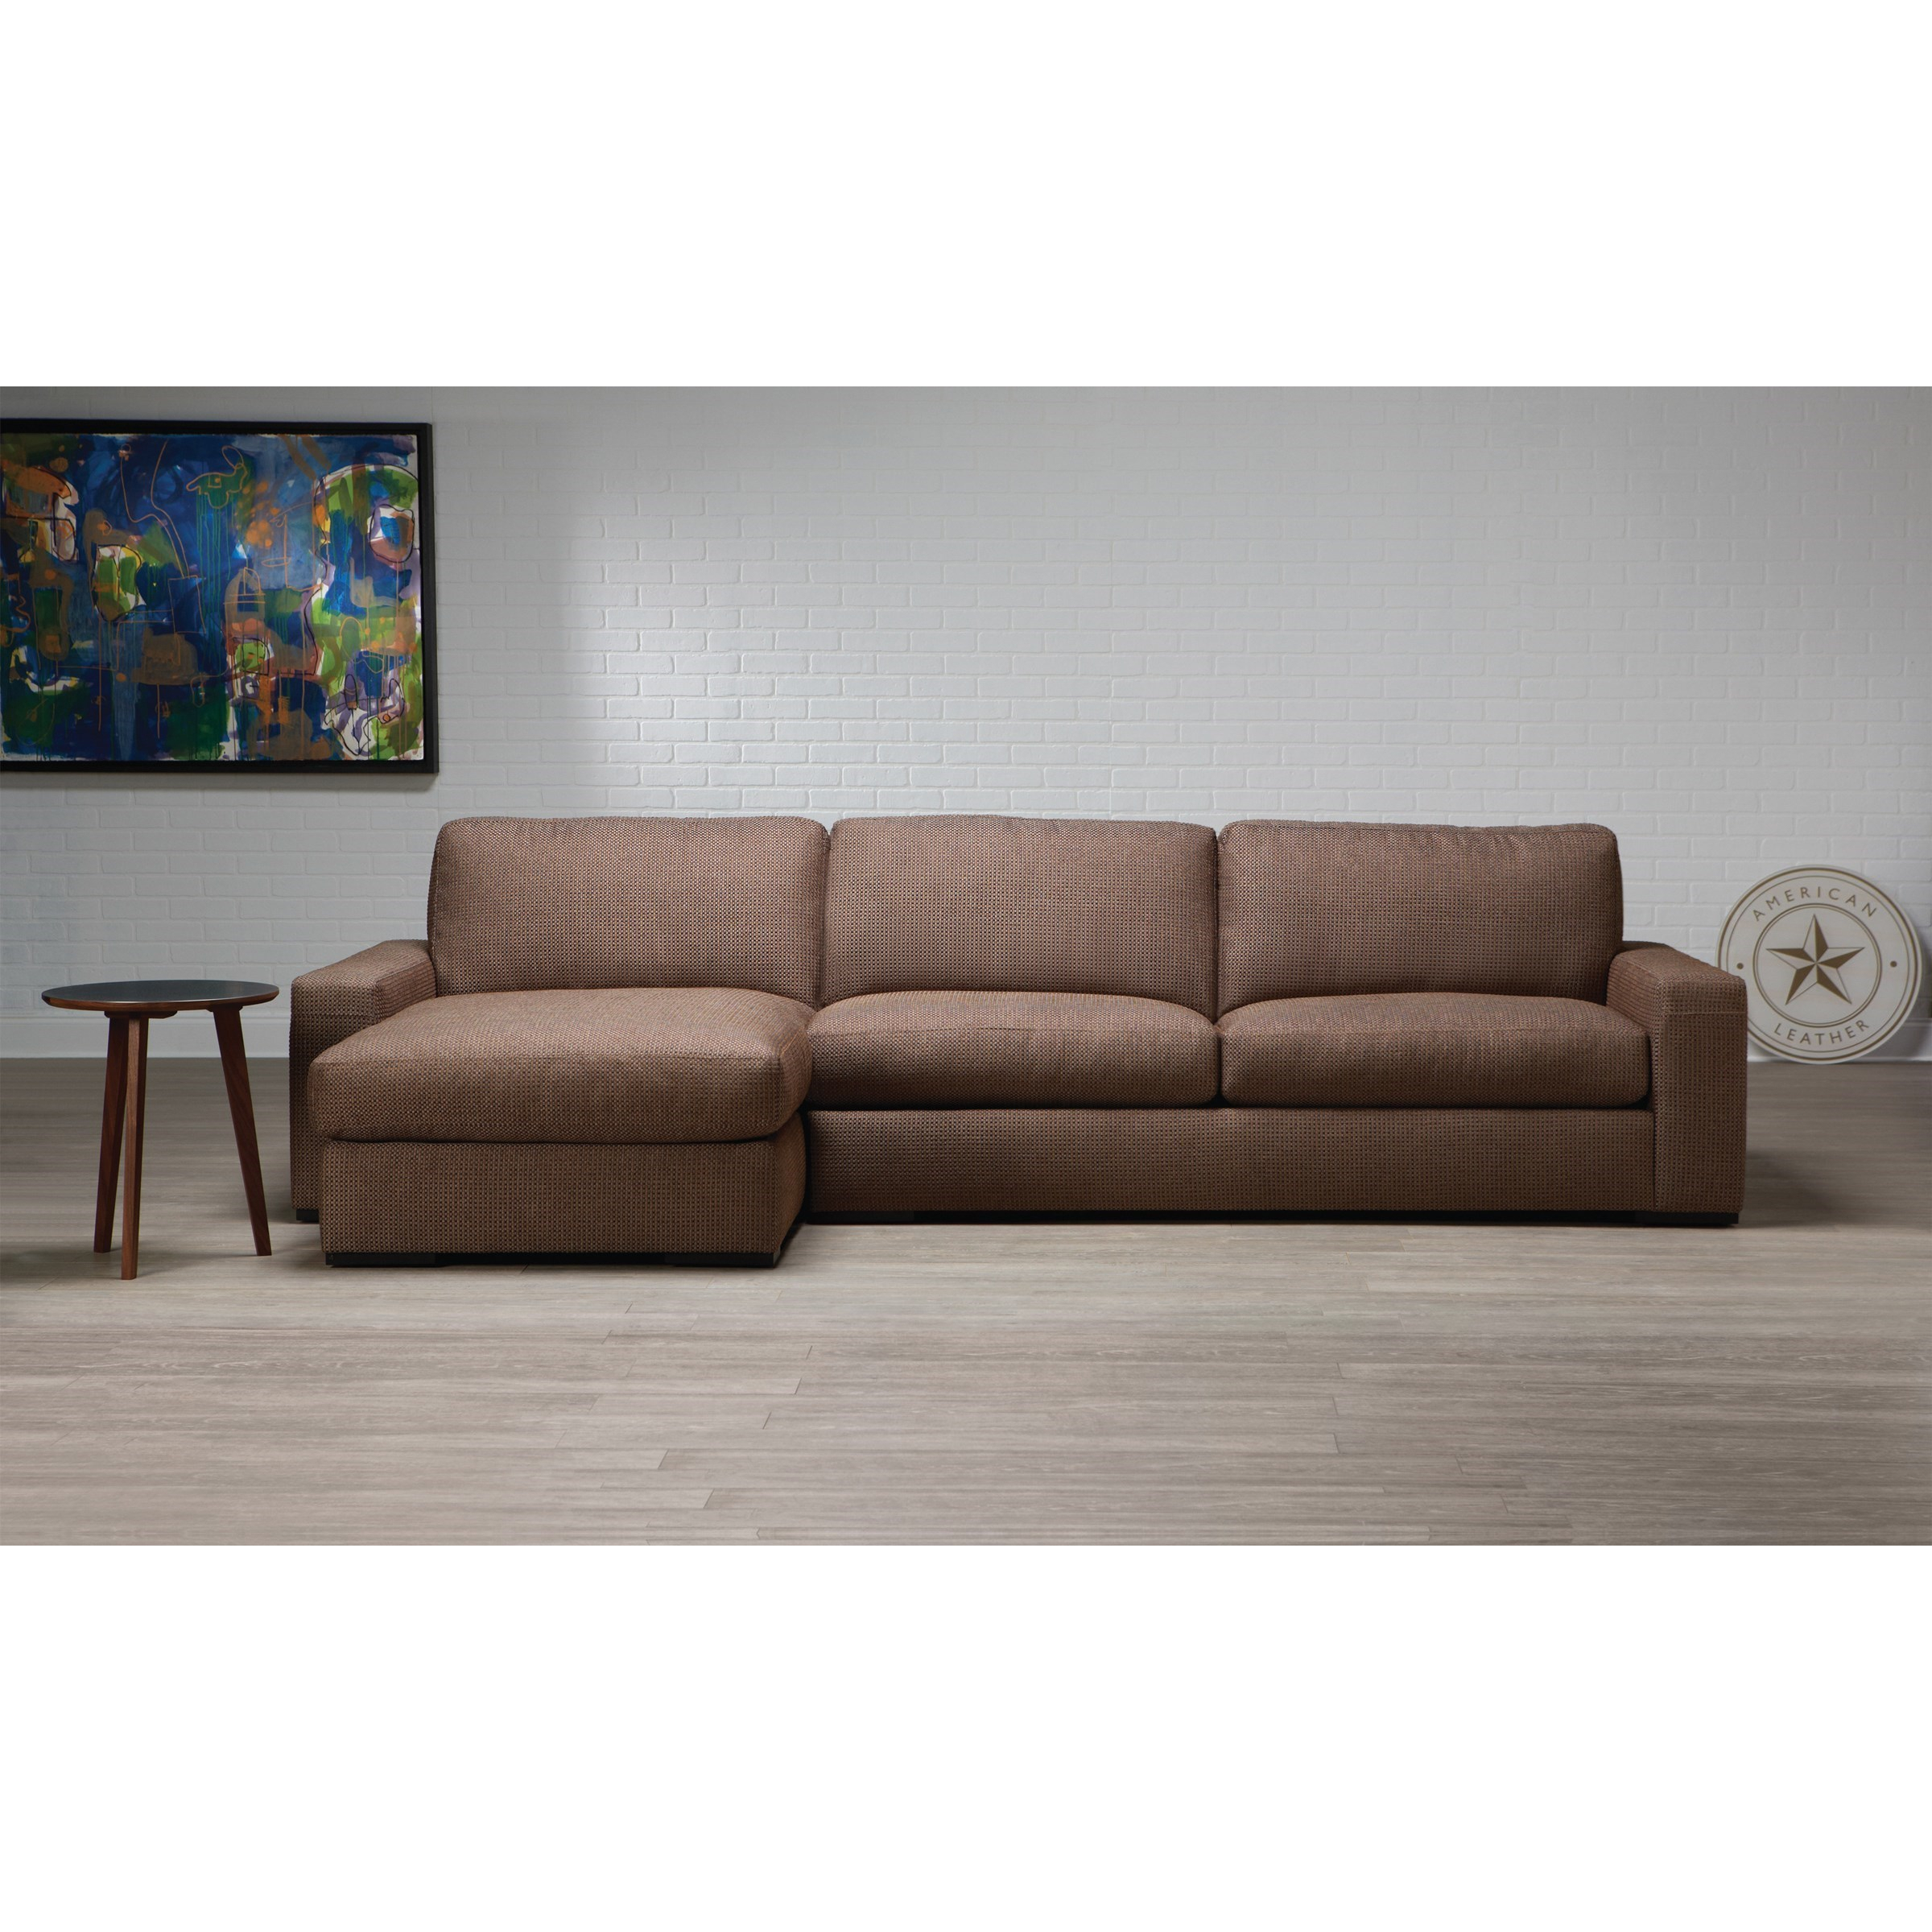 American Leather Westchester Contemporary 2 Piece Pertaining To 2Pc Connel Modern Chaise Sectional Sofas Black (View 11 of 15)